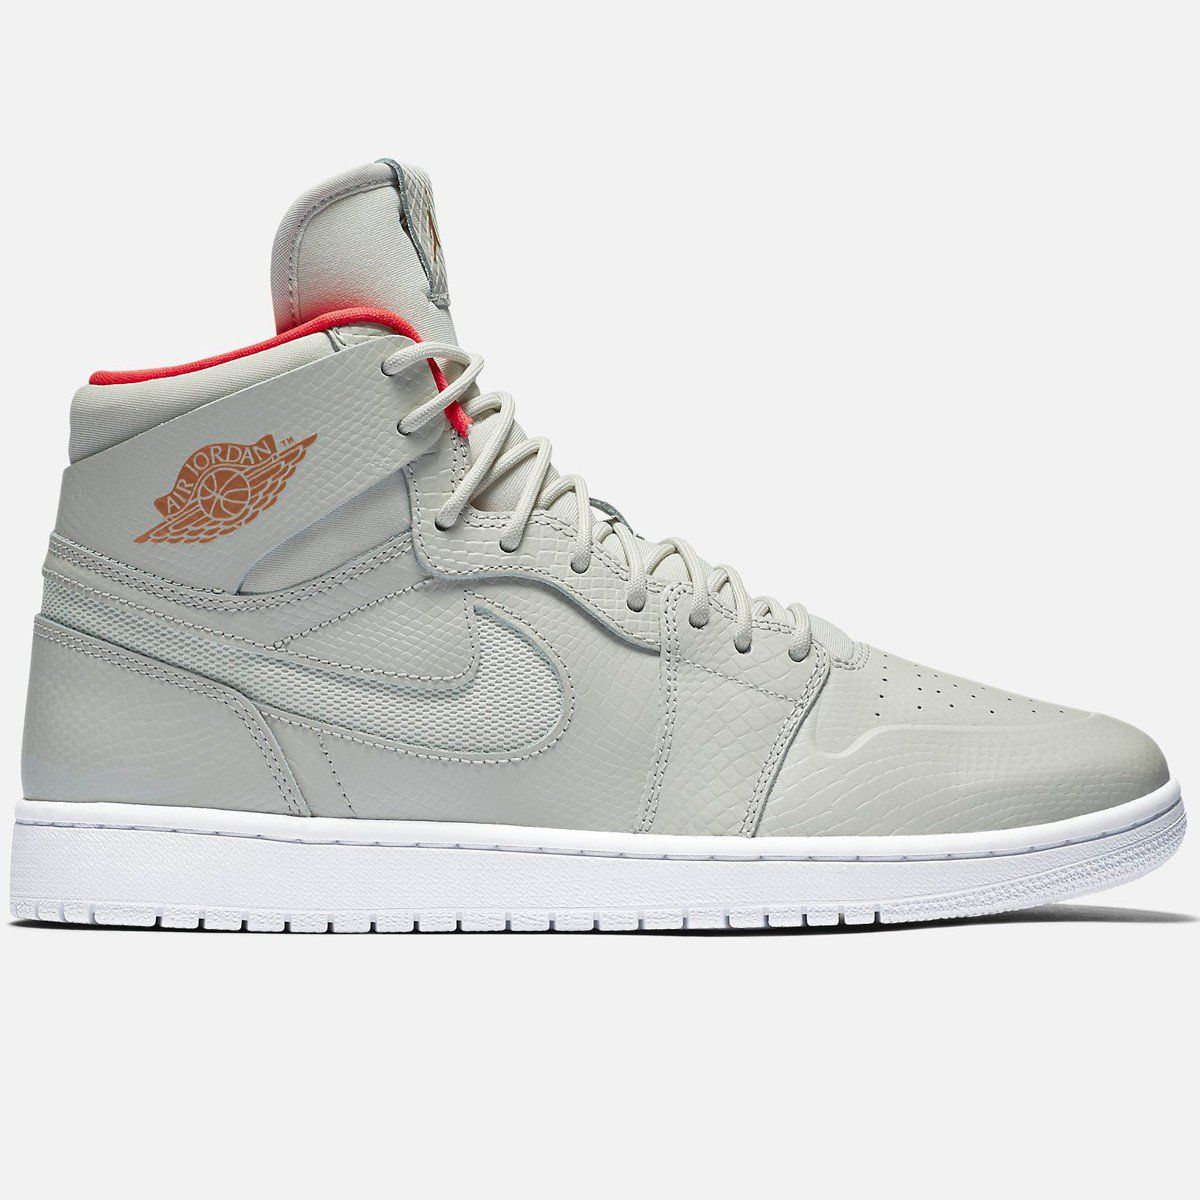 51baaf9b6ec Jordan Air Jordan 1 Retro High Nouveau (Pure Platinum Pure Platinum-Bright  Crimson-White)